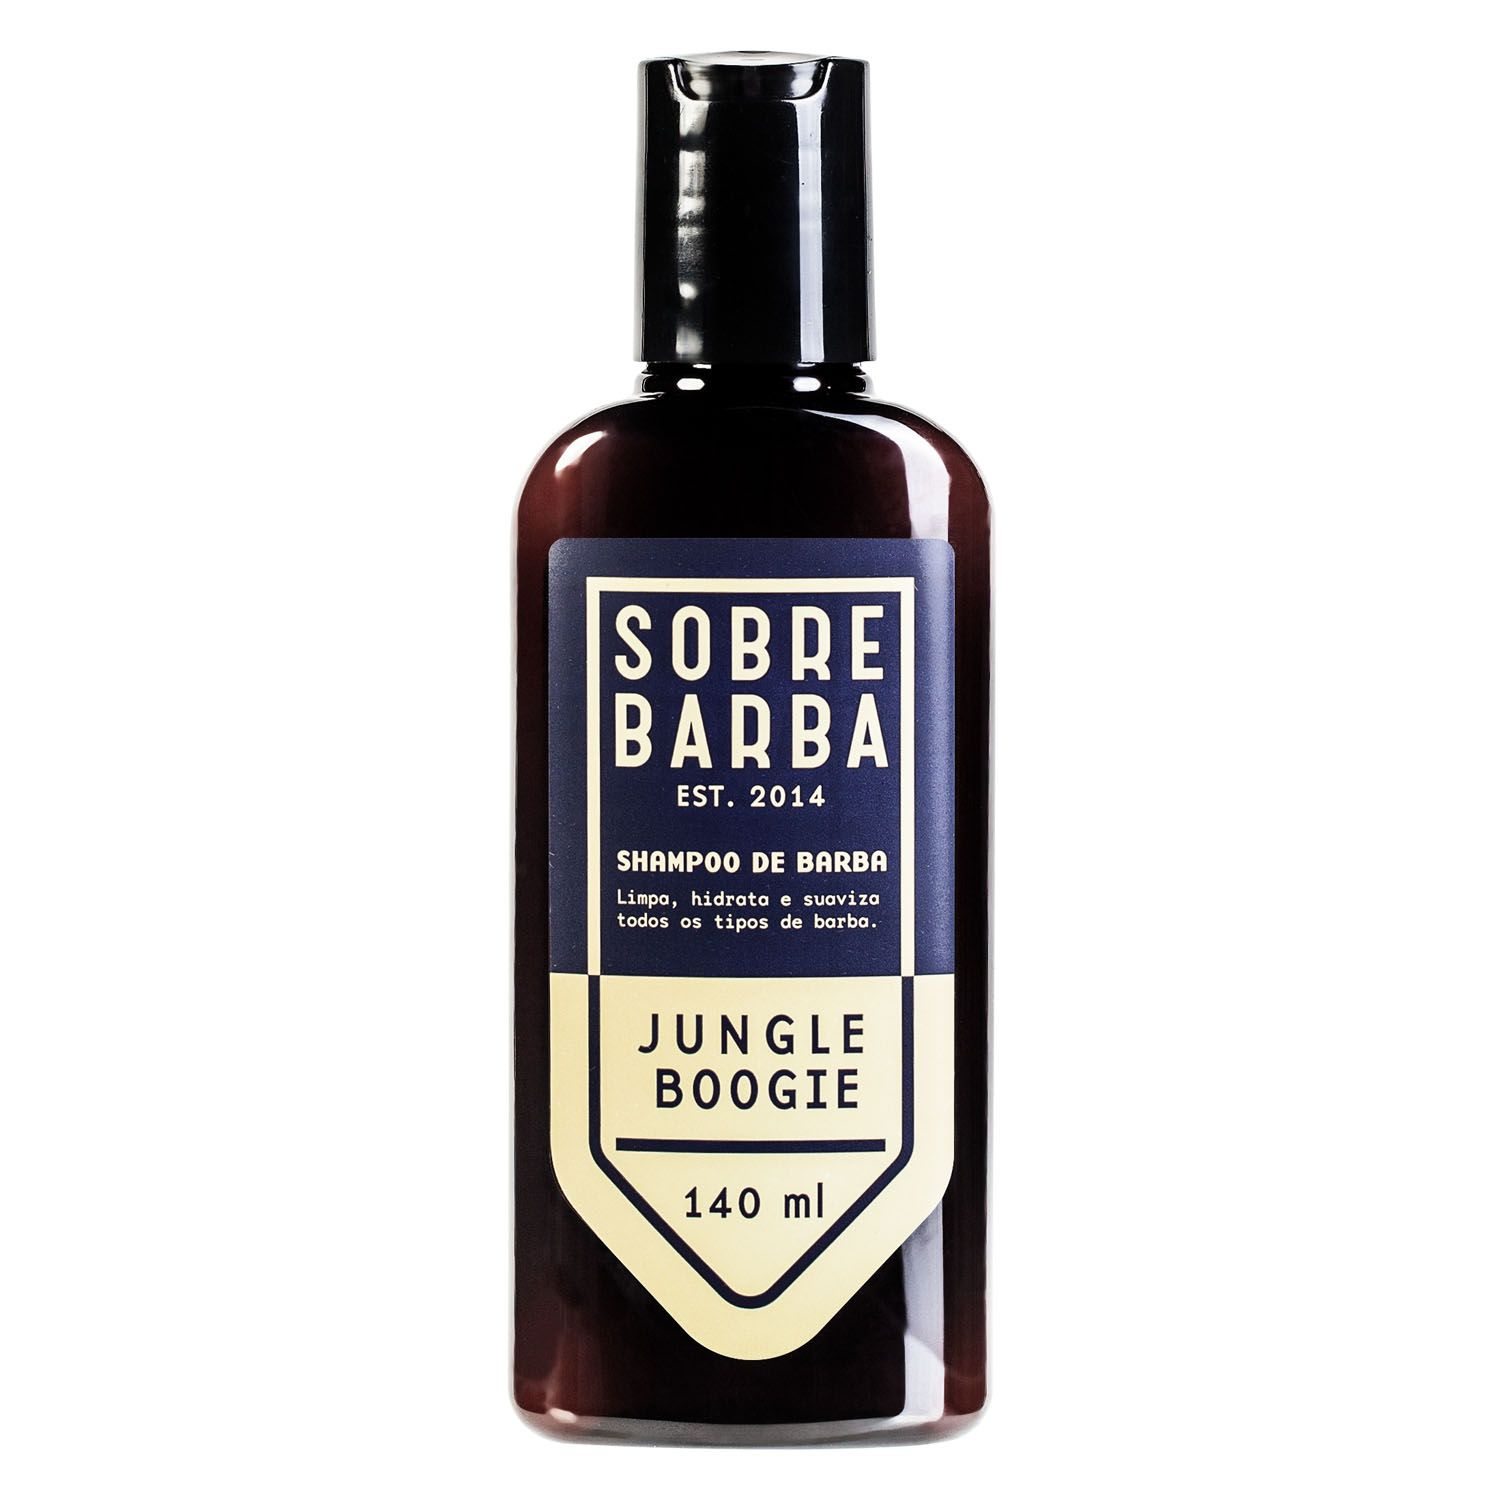 SHAMPOO DE BARBA SOBRE BARBA JUNGLE BOOGIE 140ml